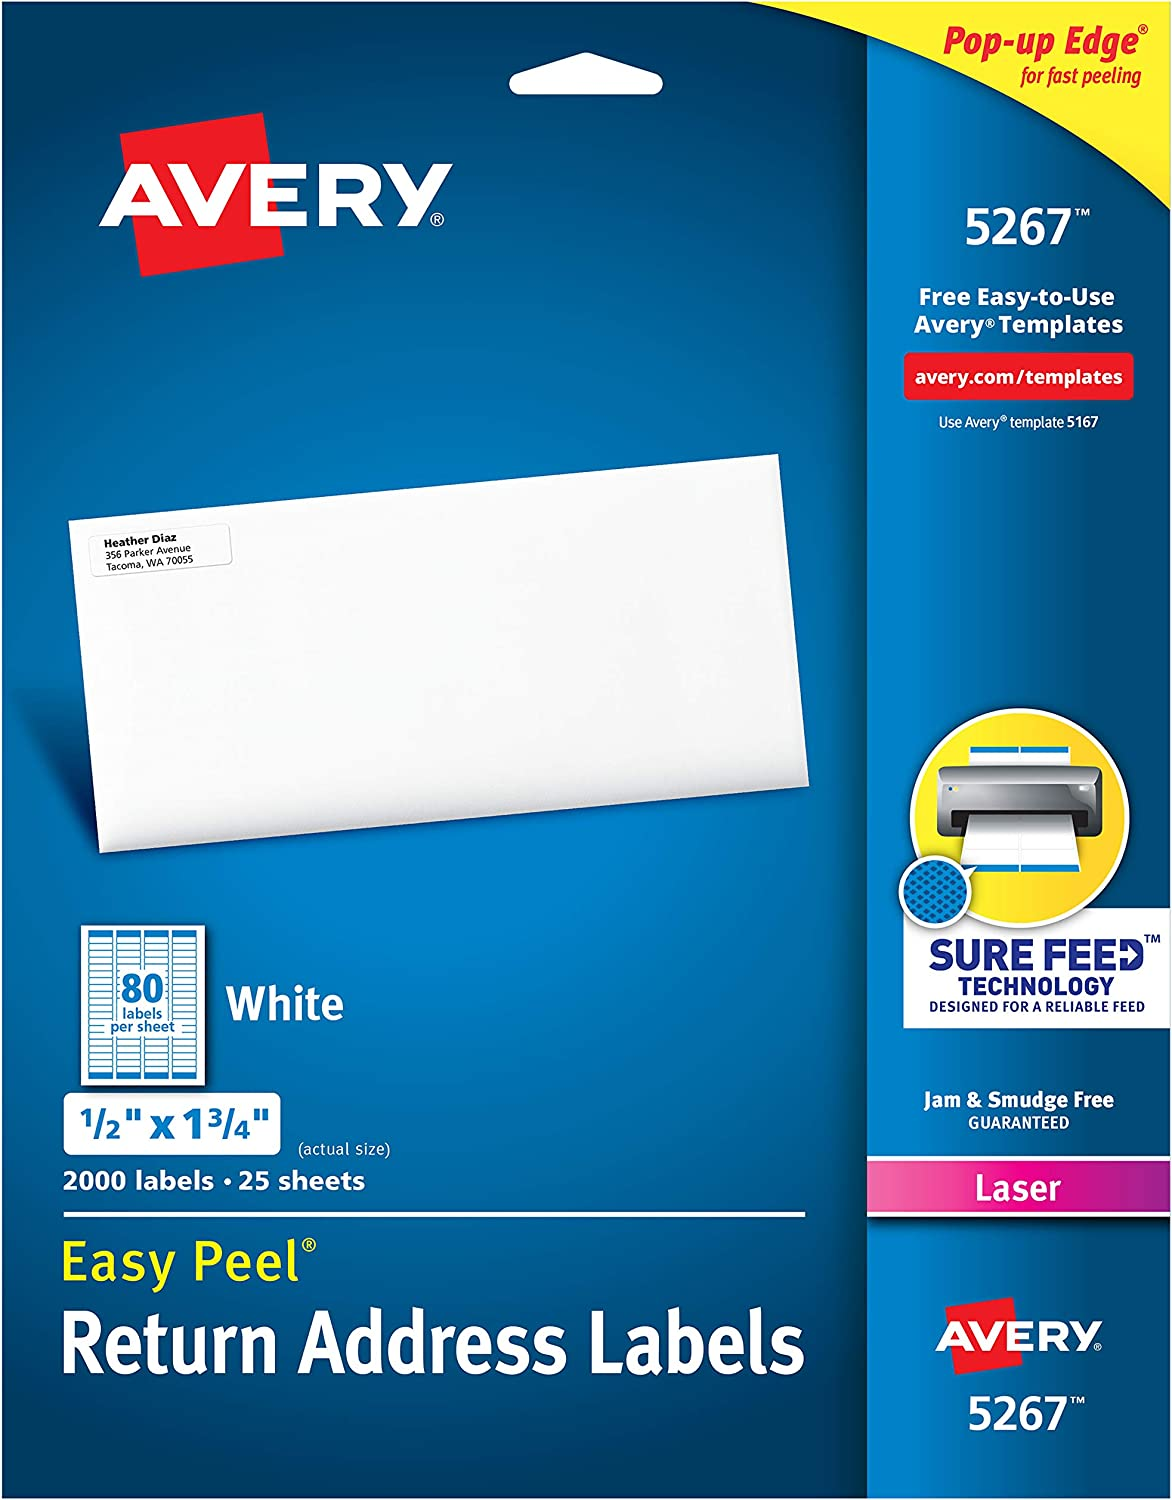 AVERY 5267 Easy Peel Return Address Labels, Laser, 1/2 x 1 3/4, White (Pack of 2000), (Model: 05267)